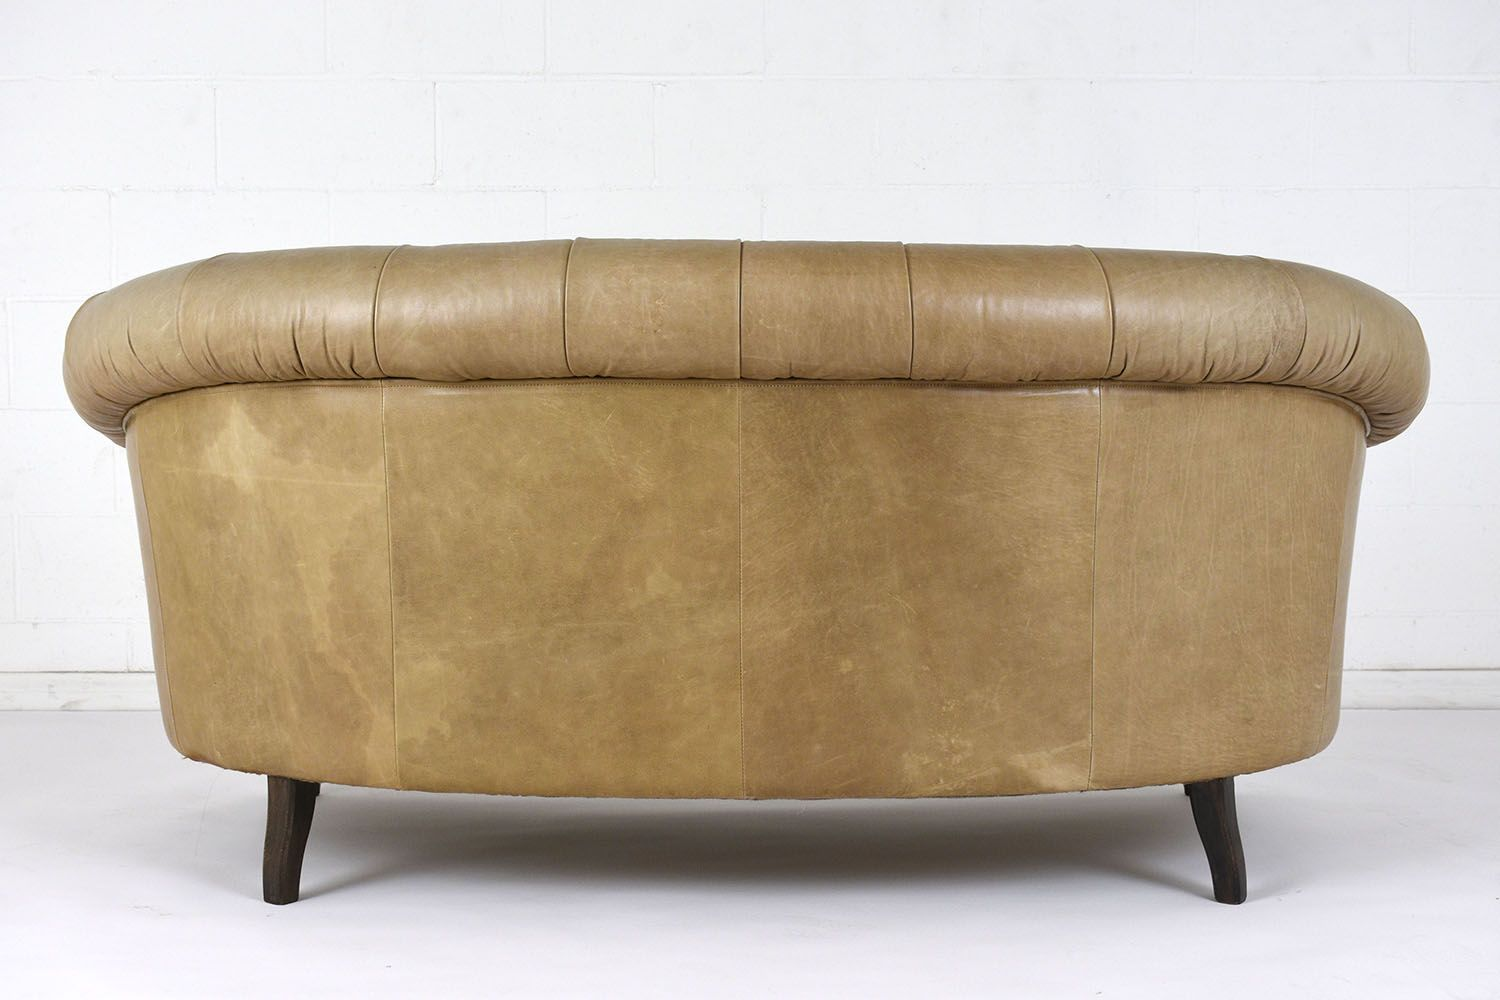 Chesterfield Style Leather Sofa, 1960s for sale at Pamono